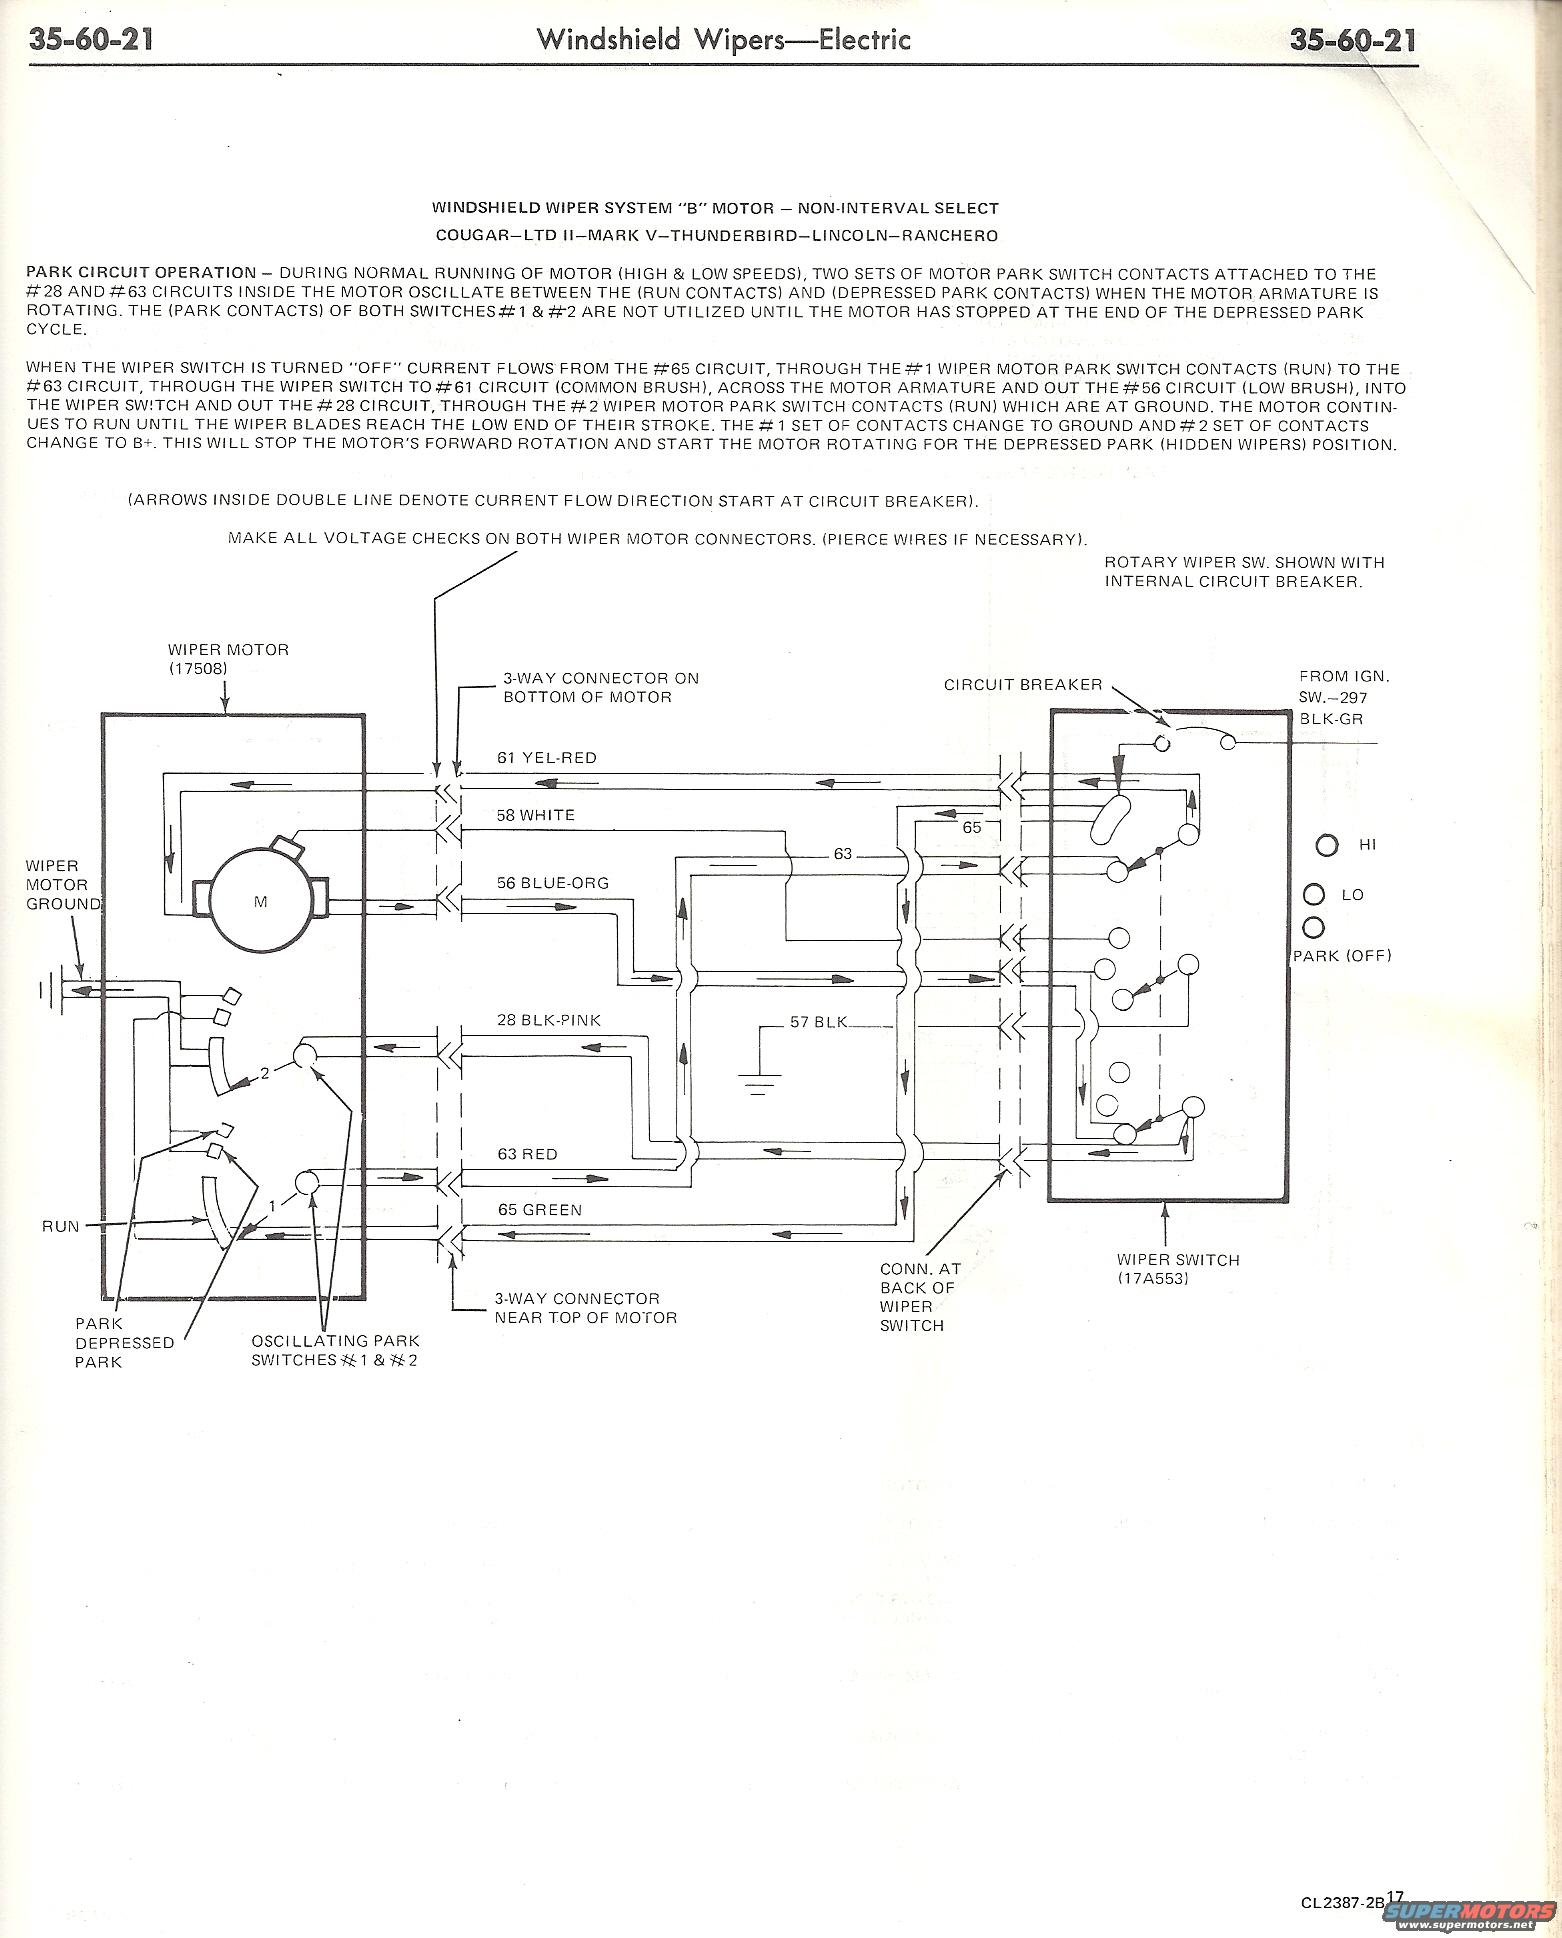 Wiring Diagram 1979 Ford Fairmont Opinions About 79 Ranchero Get Free Image 1956 1970